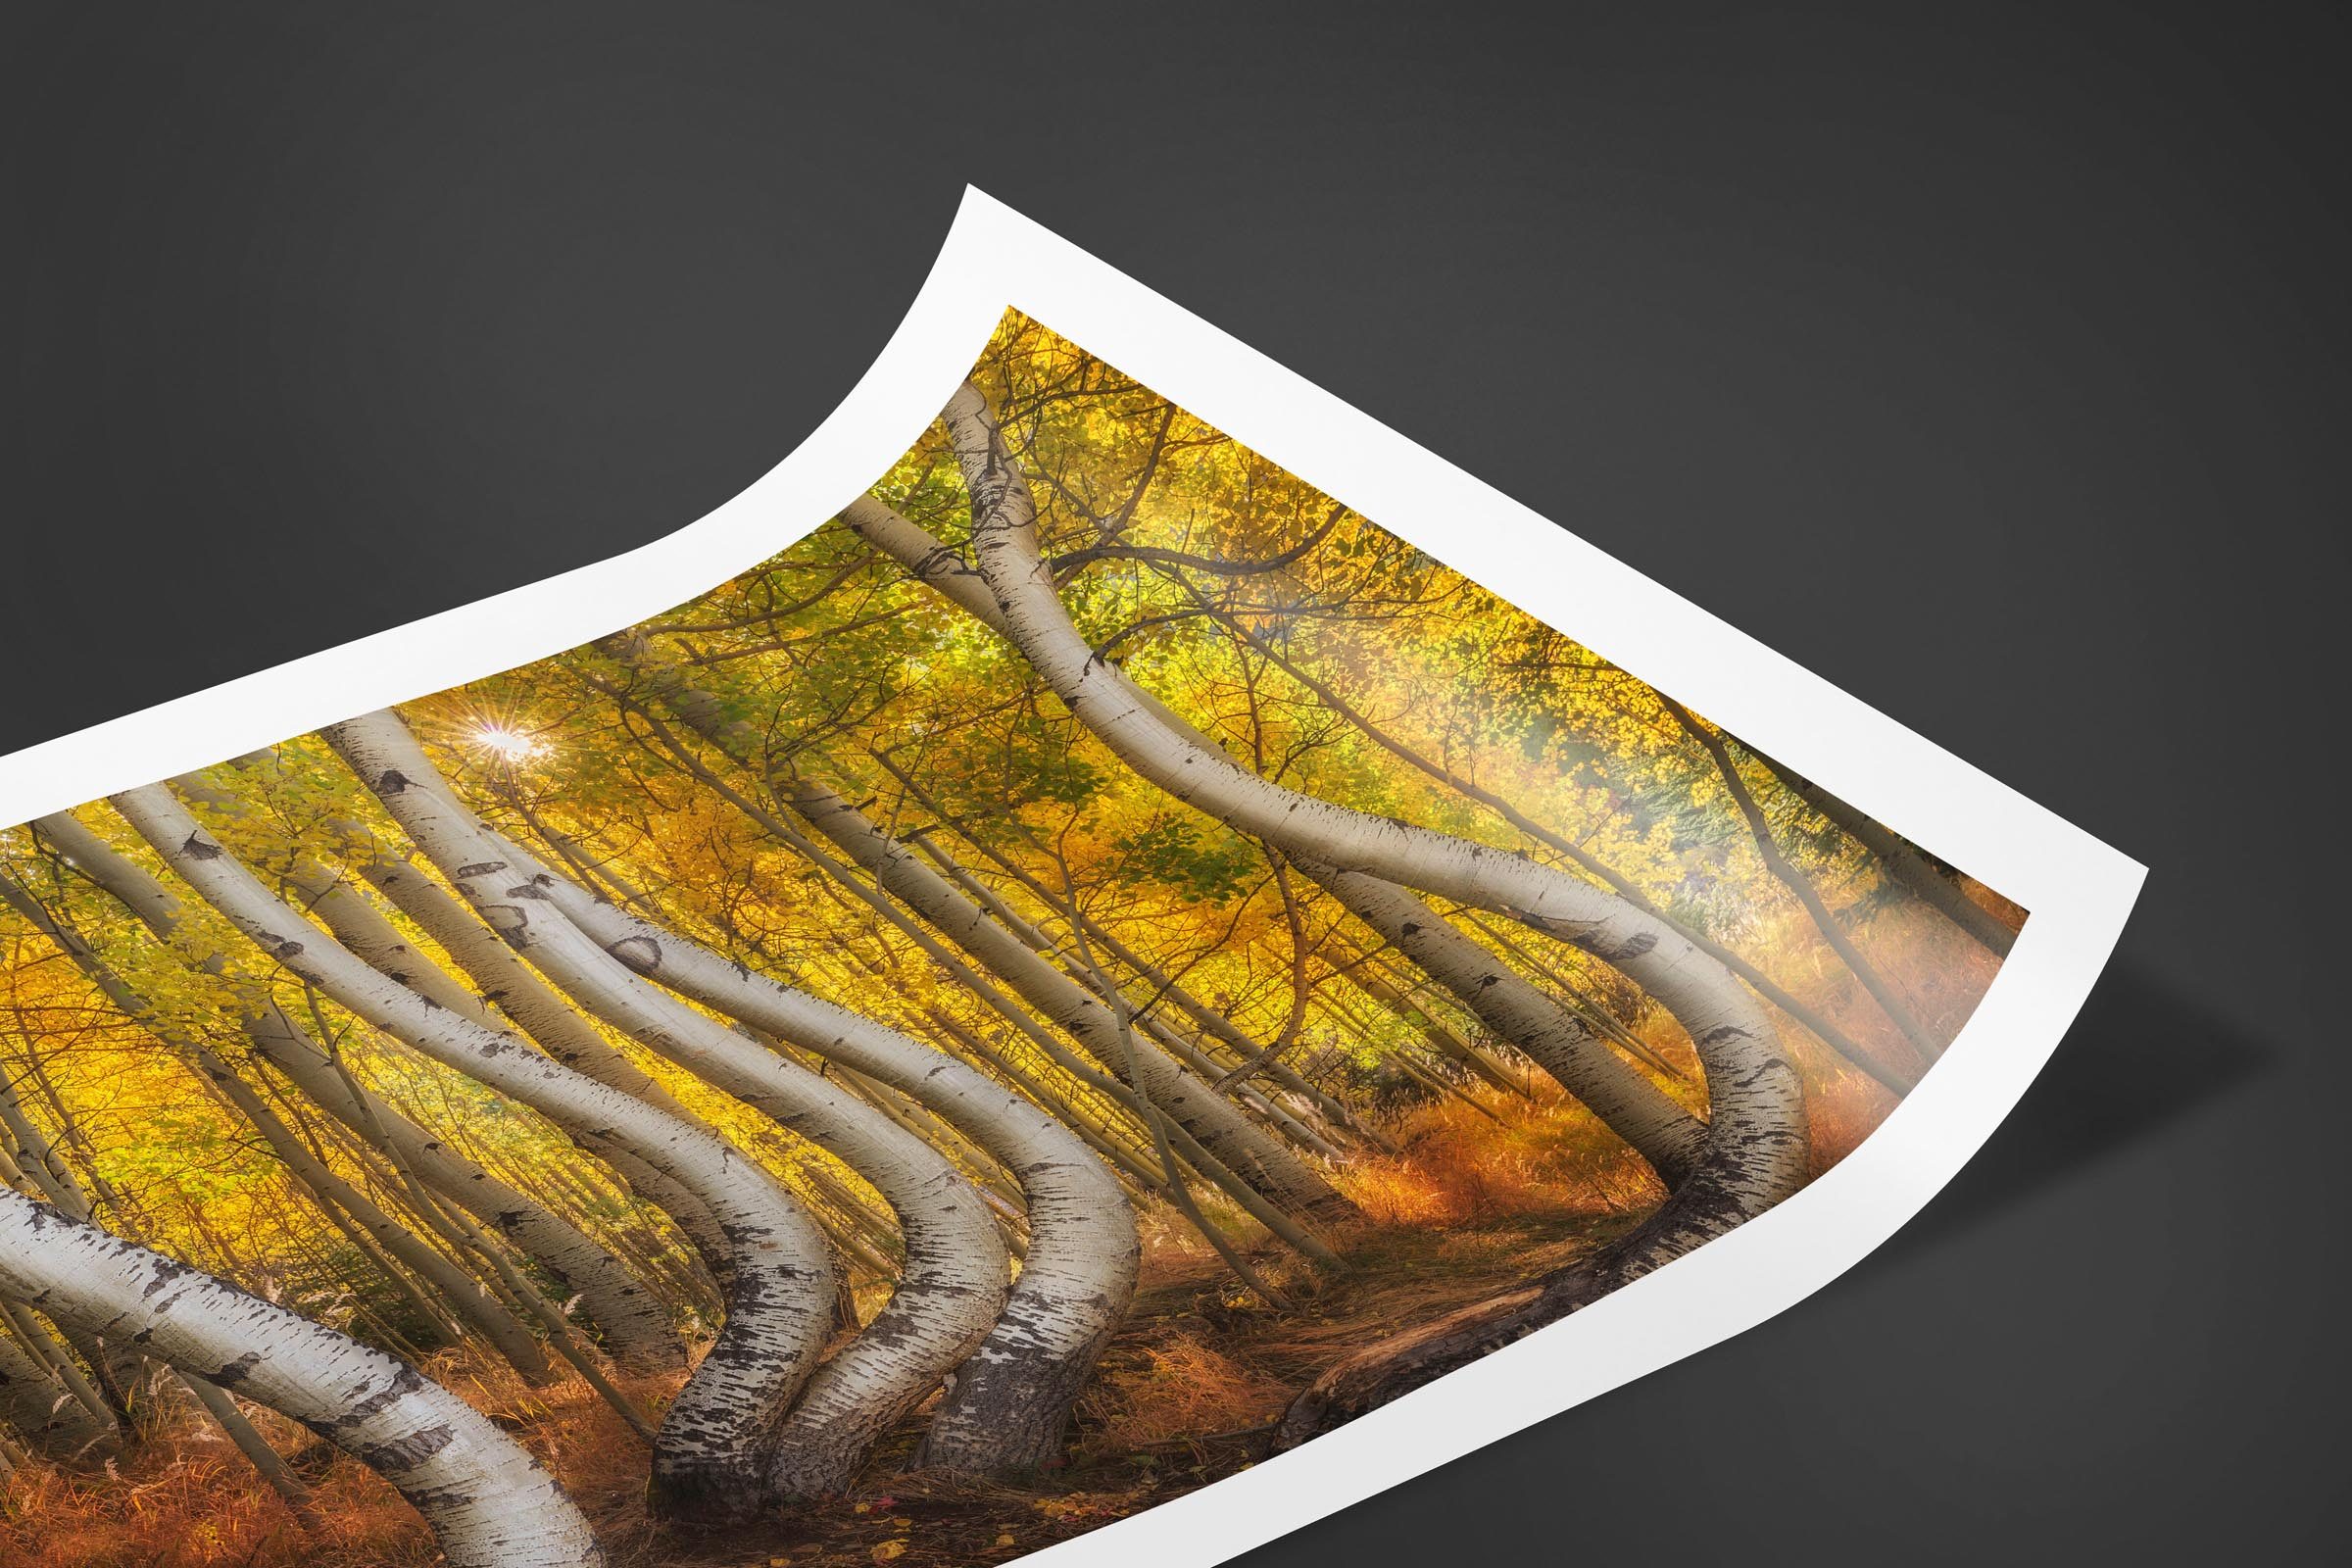 Fine art limited edition print of Bent Aspens in San Juan Mountains, Colorado by Brent Goldman Photography